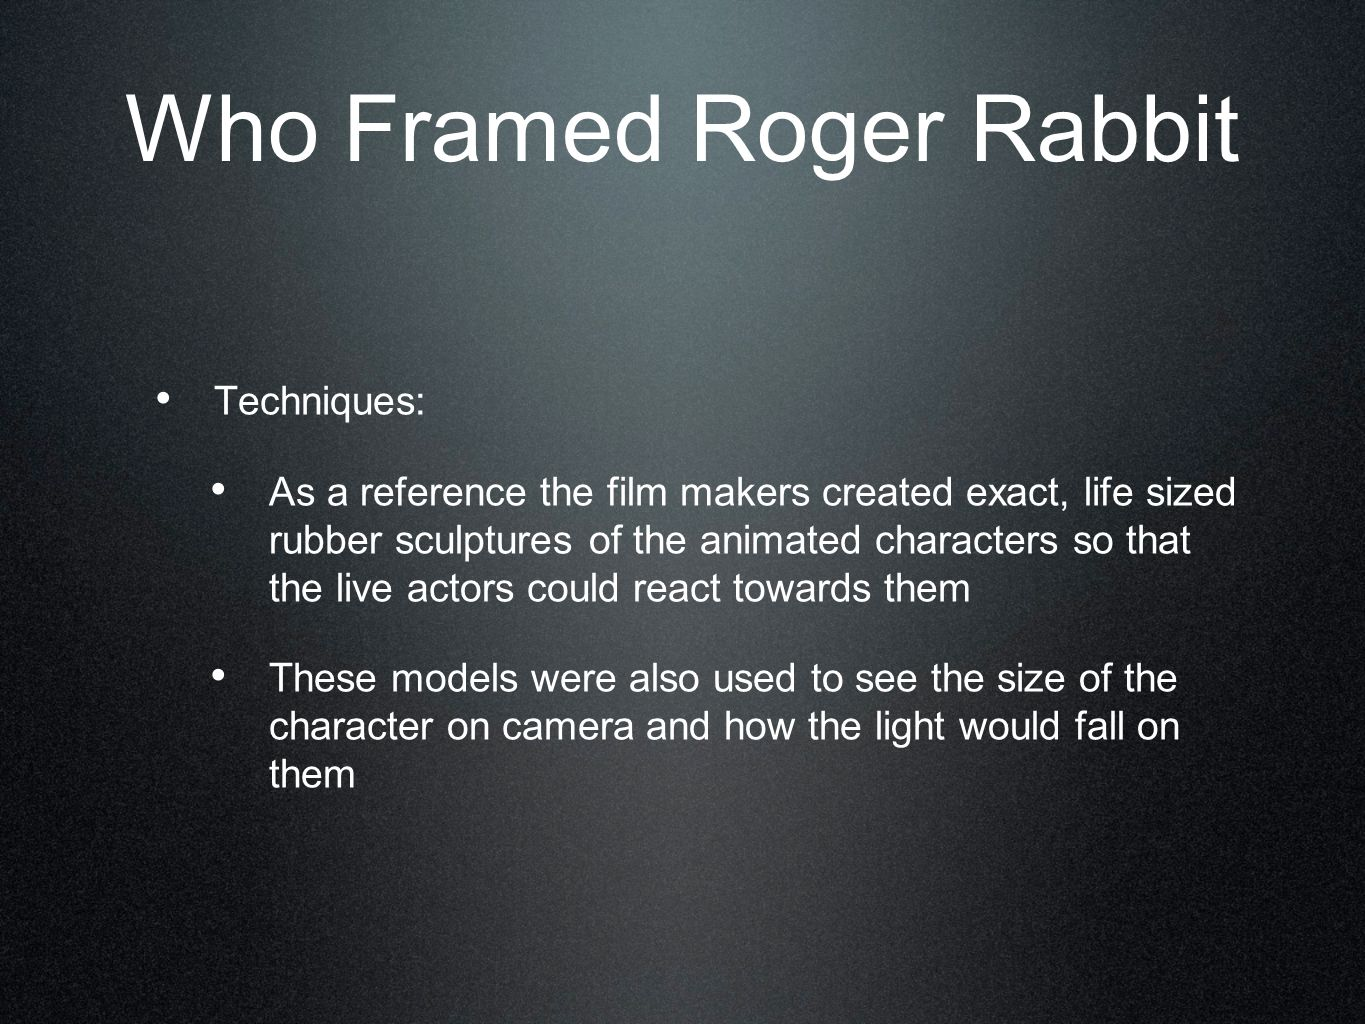 Who Framed Roger Rabbit Techniques: As a reference the film makers created exact, life sized rubber sculptures of the animated characters so that the live actors could react towards them These models were also used to see the size of the character on camera and how the light would fall on them